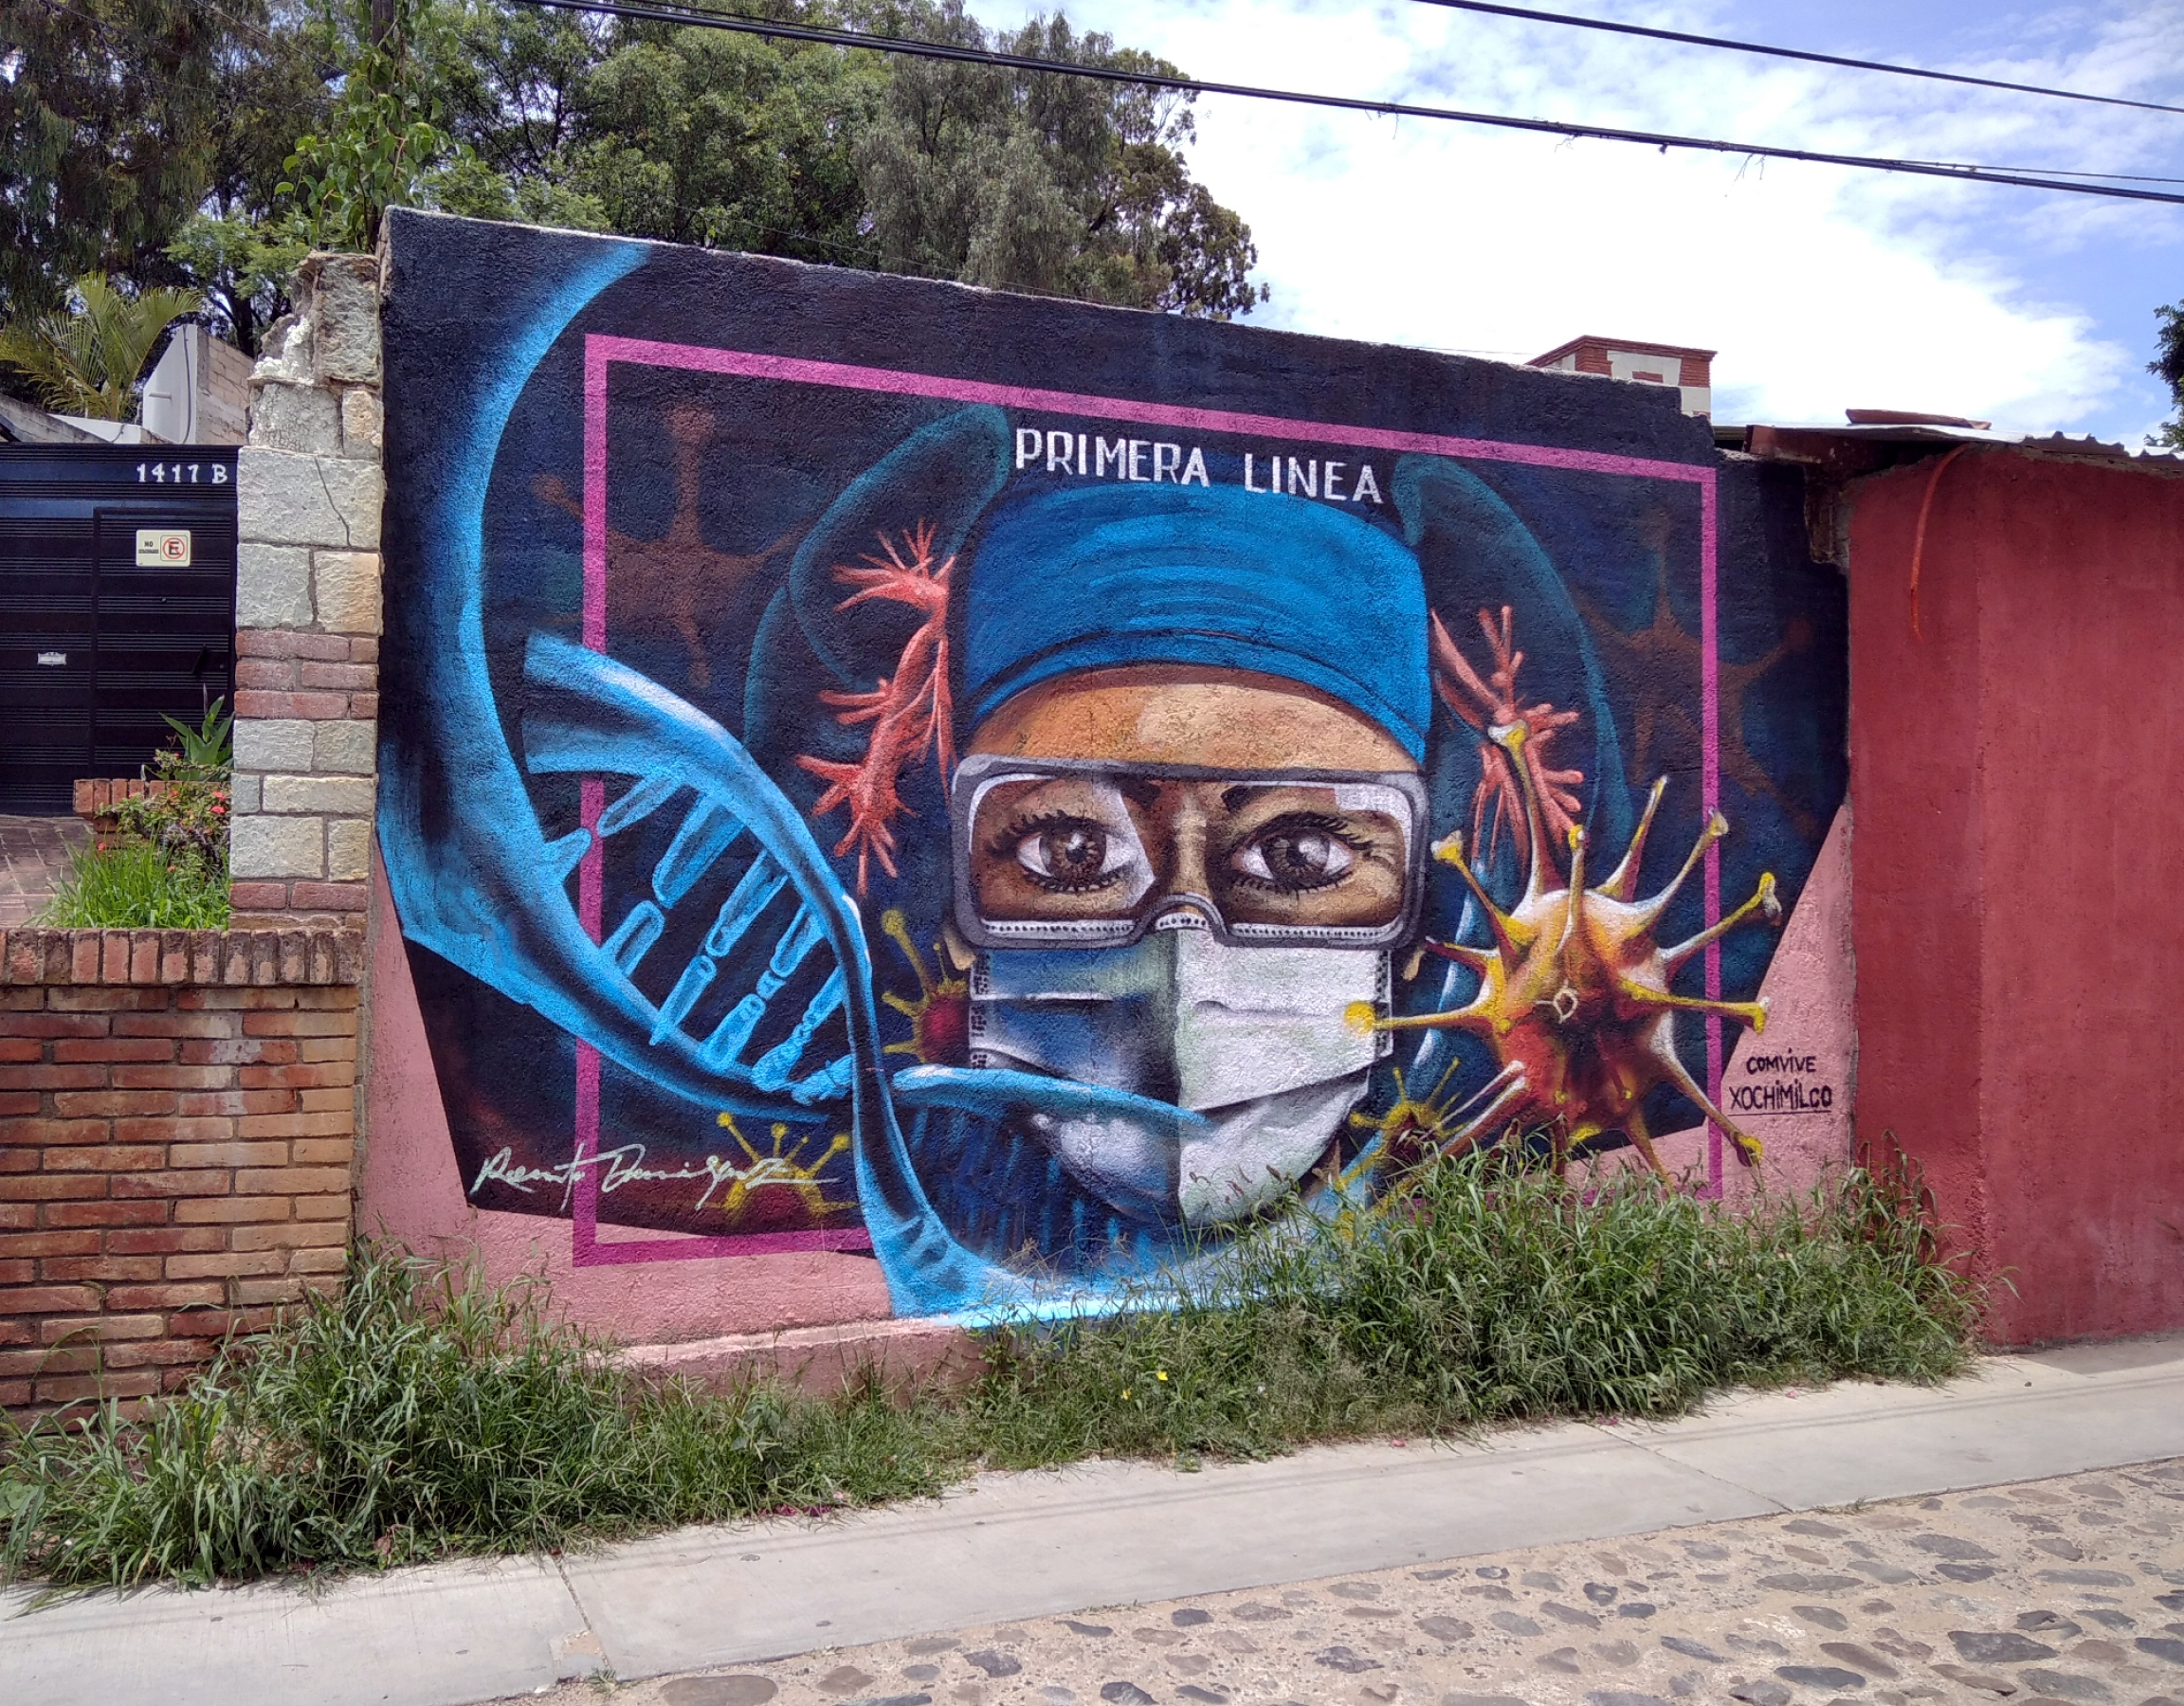 A mural near a federal IMSS hospital in Oaxaca City, Mexico, commissioned by a neighborhood organization to honor healthcare workers fighting the pandemic.